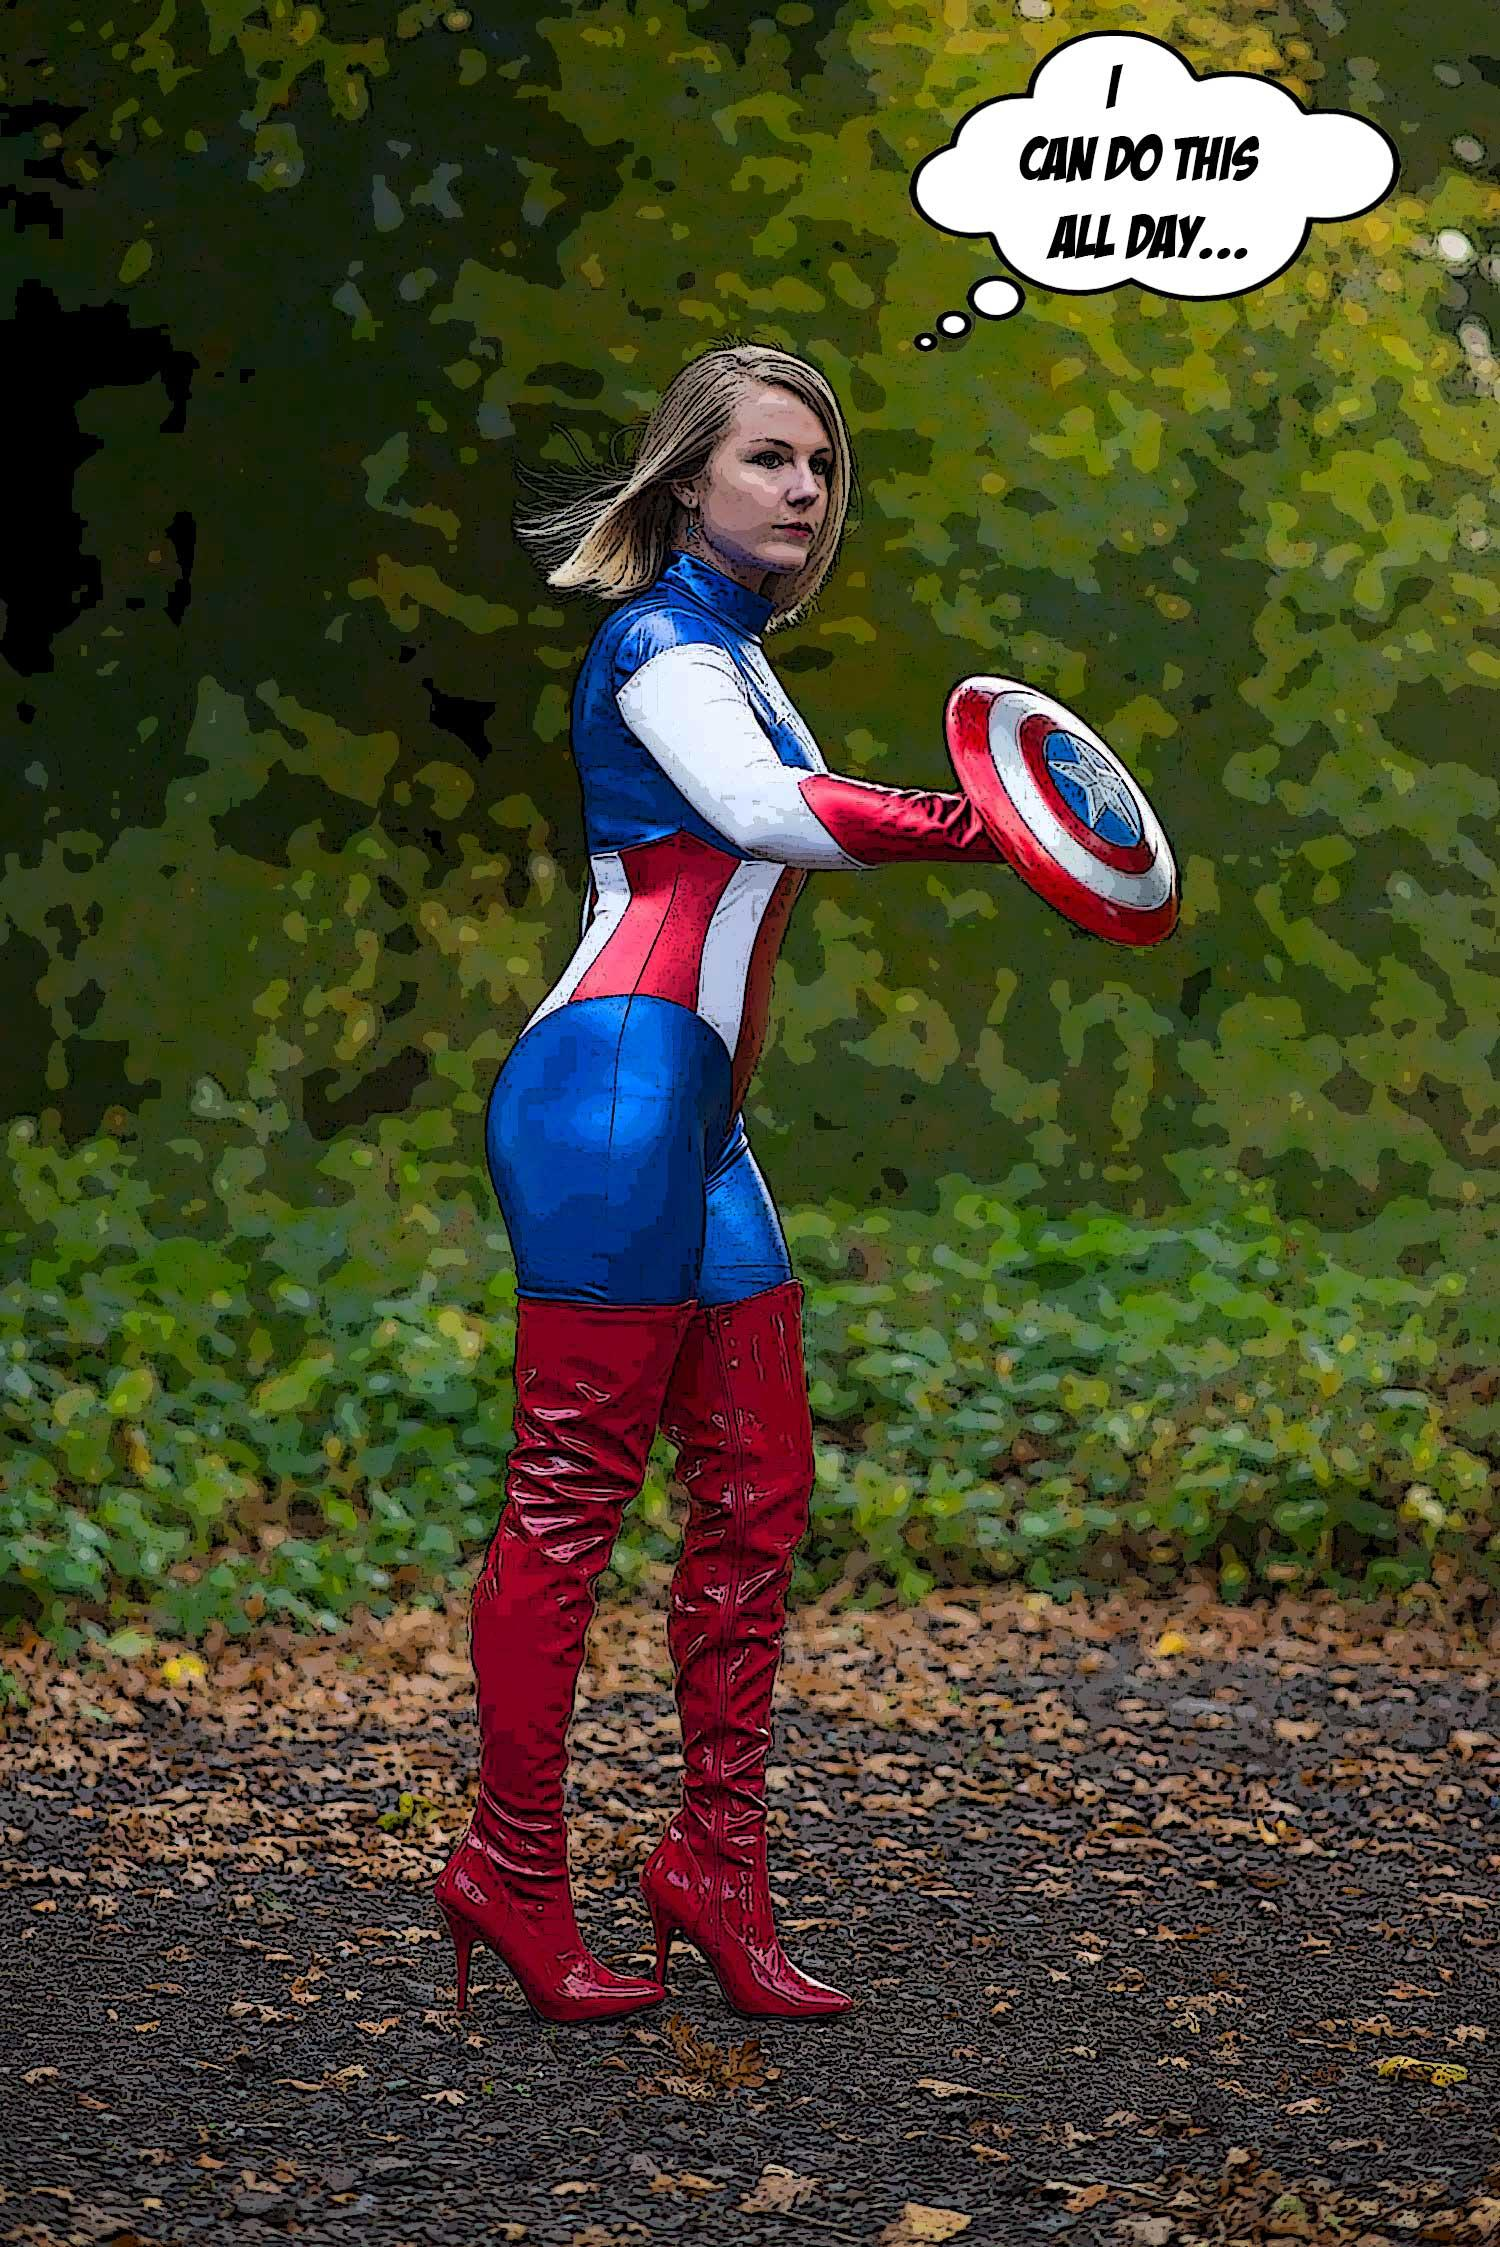 lorna-burford-miss-captain-america-costume-outfit-comic-3